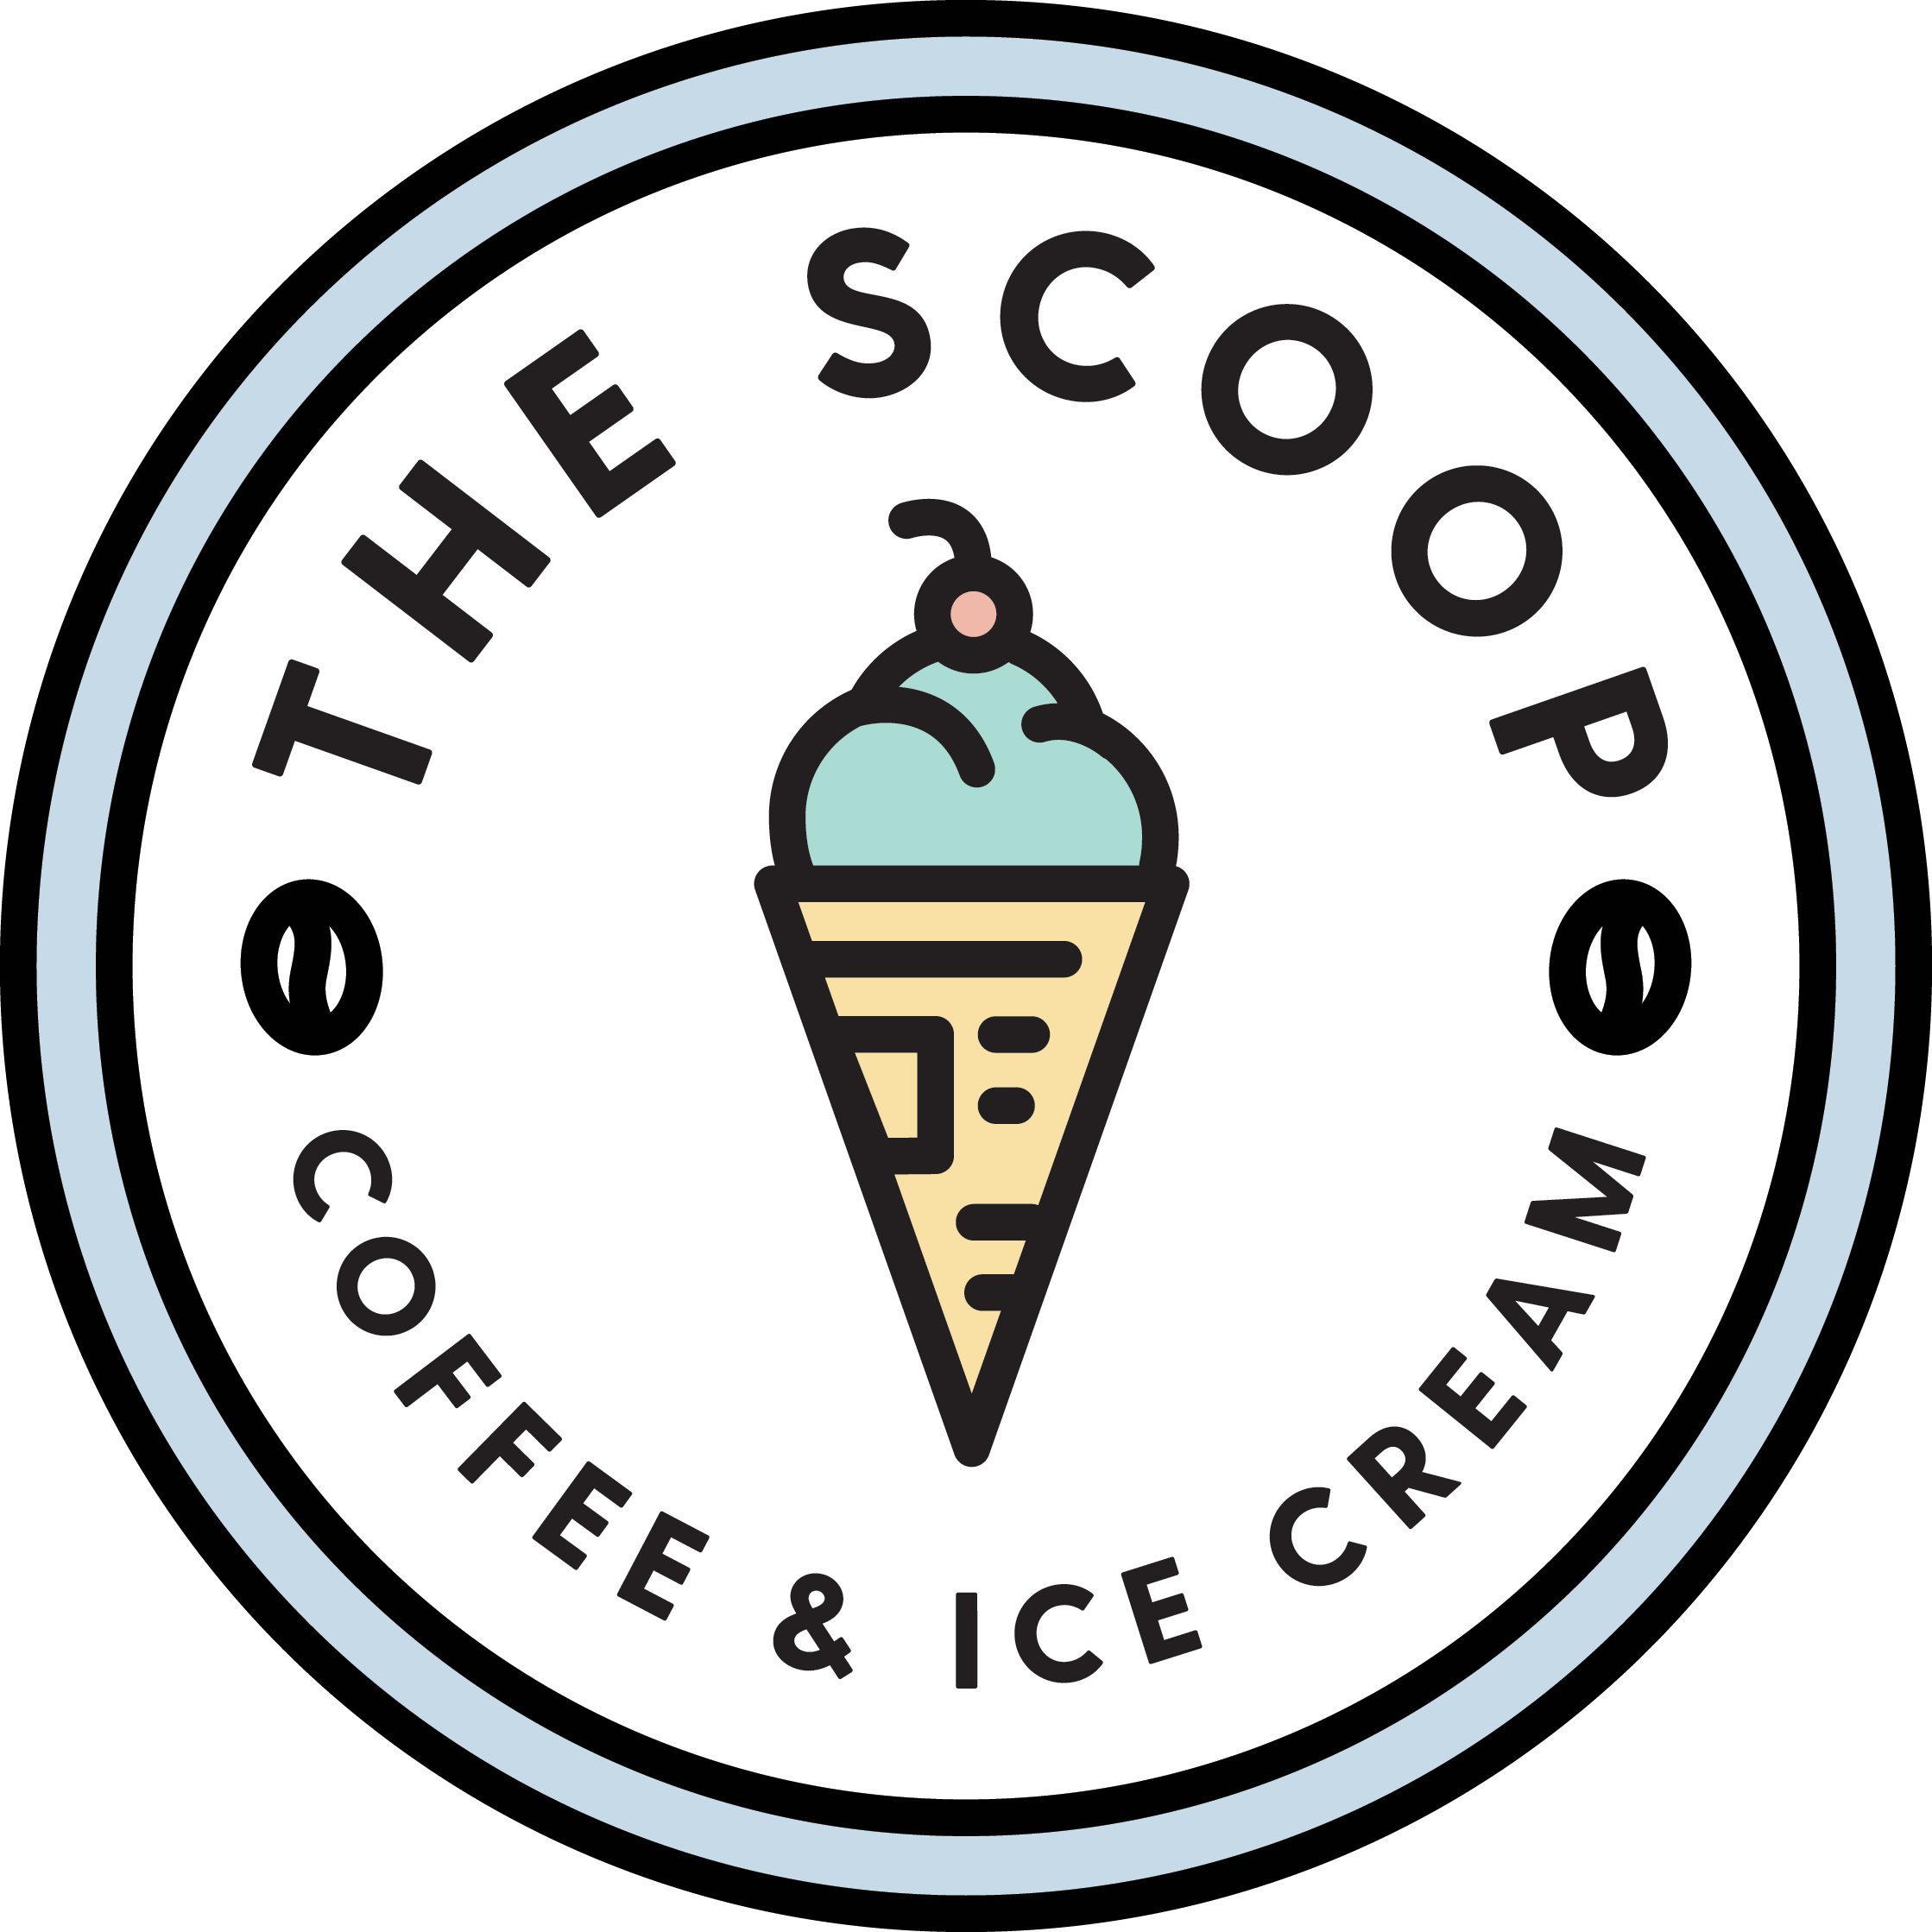 TheScoop_Circle_logo.png